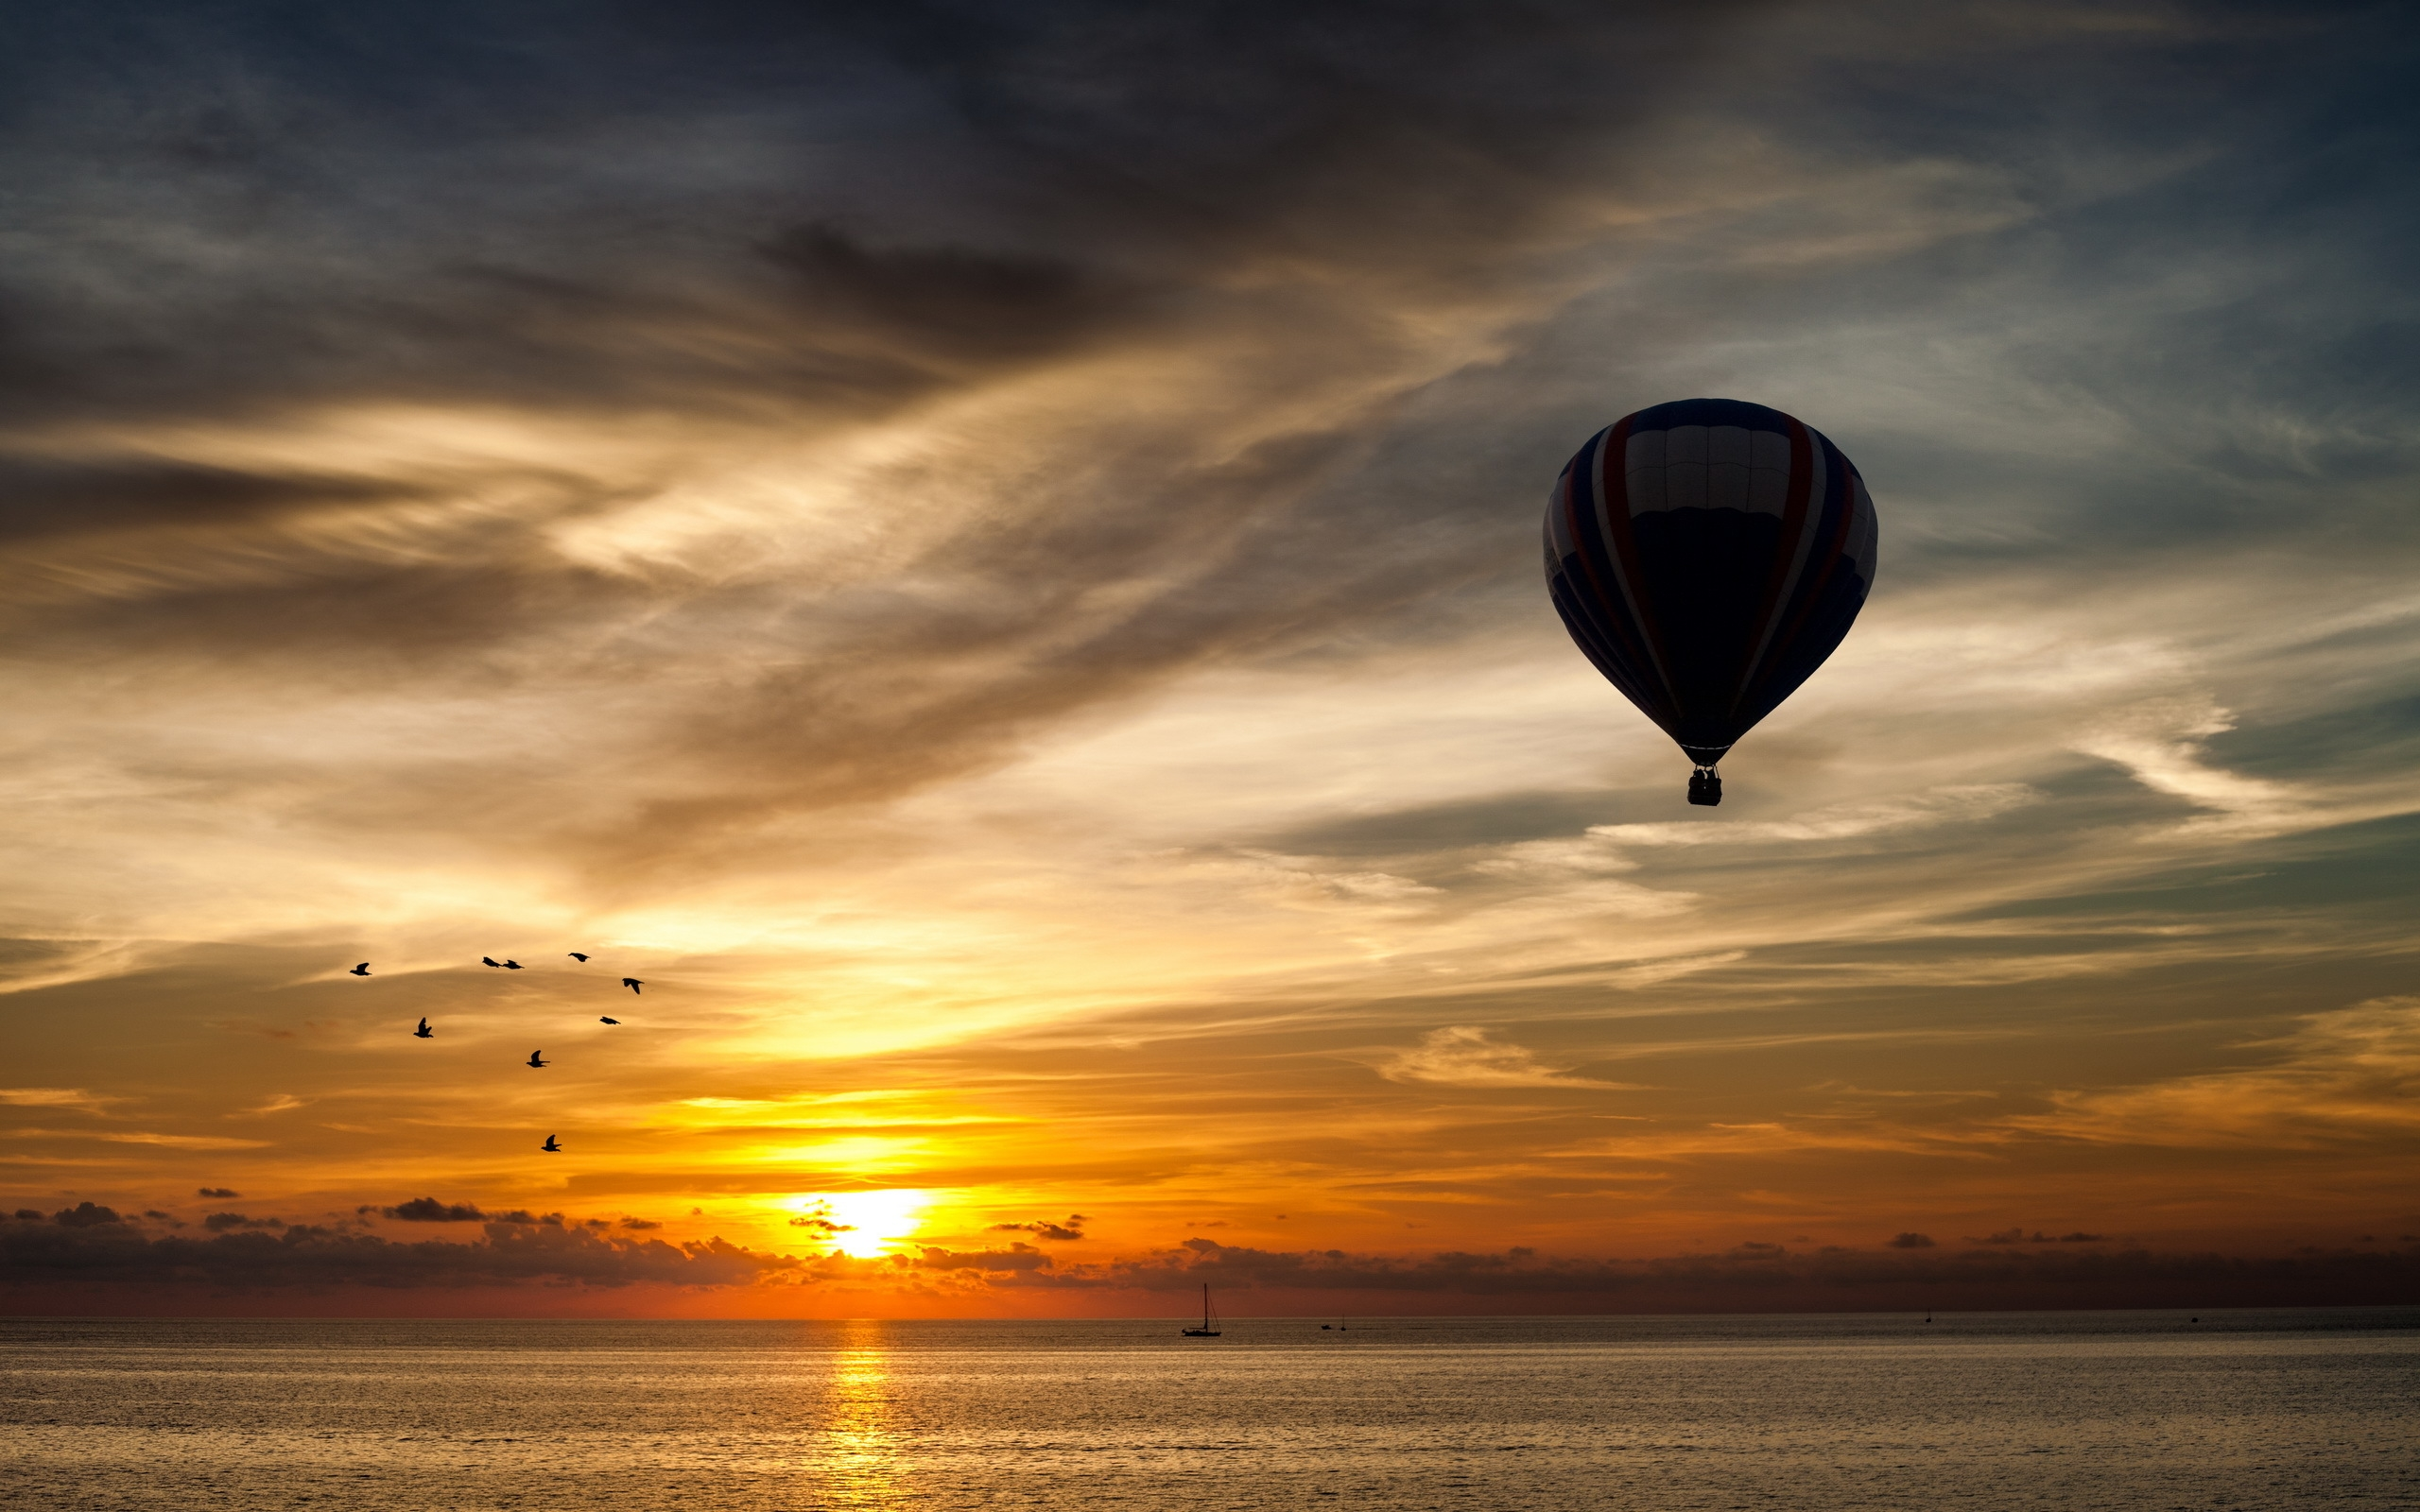 hot air balloon silhouette wallpaper 47600 2560x1600 px